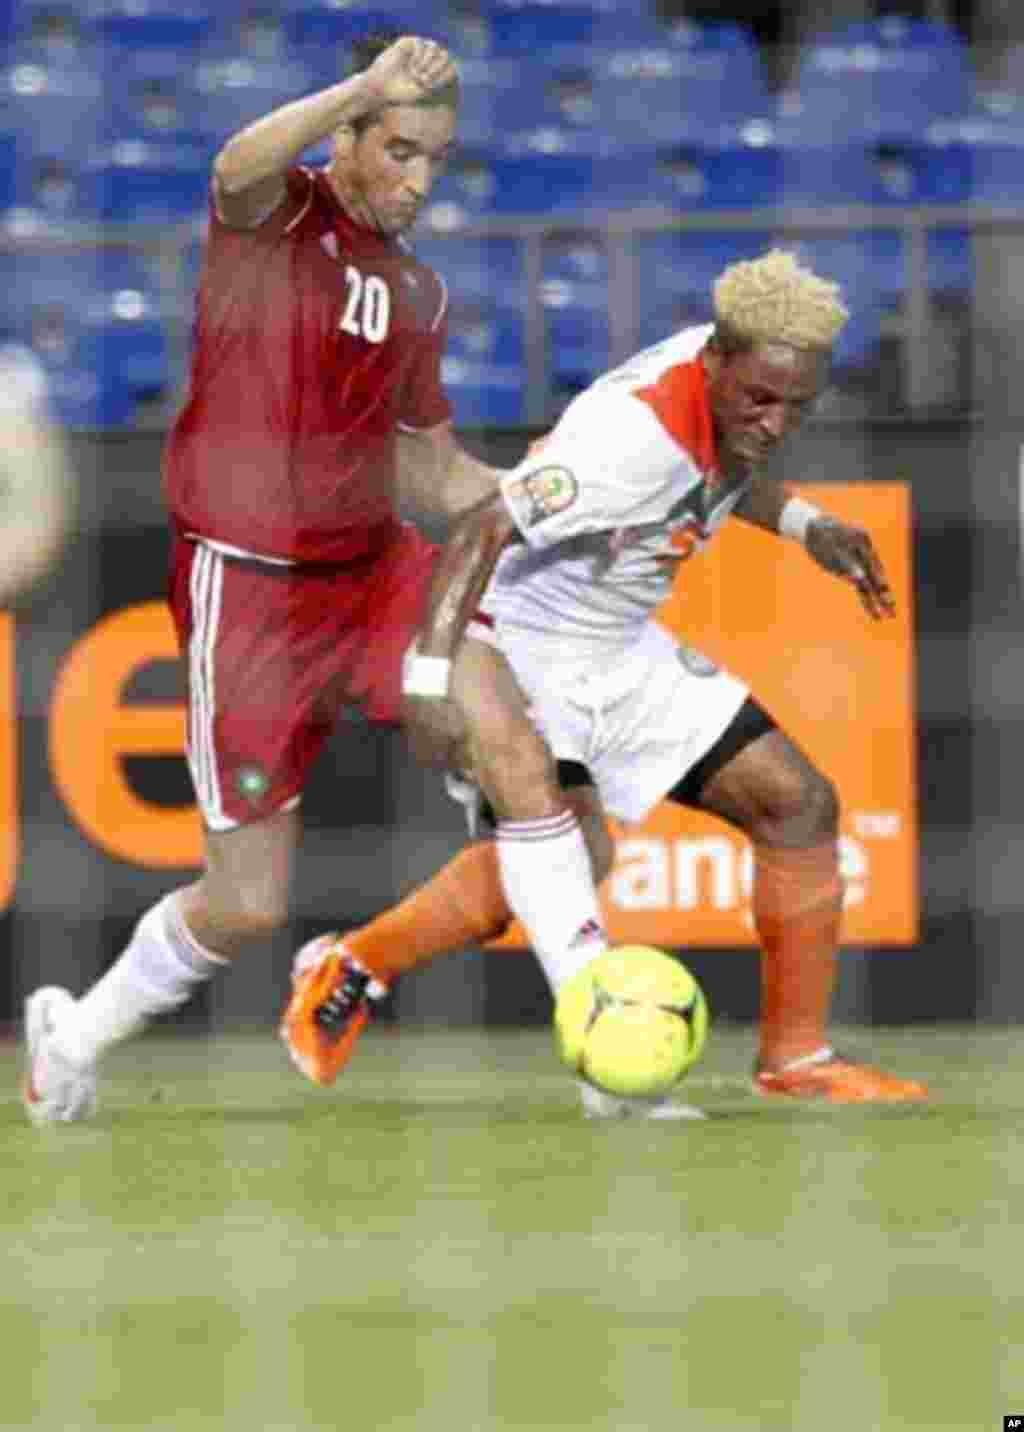 Morocco's Youssouf Hadji (20) is tackled by Niger's Jimmy Bulus during their final African Cup of Nations Group C soccer match at the Stade De L'Amitie Stadium in Libreville, Gabon January 31, 2012.